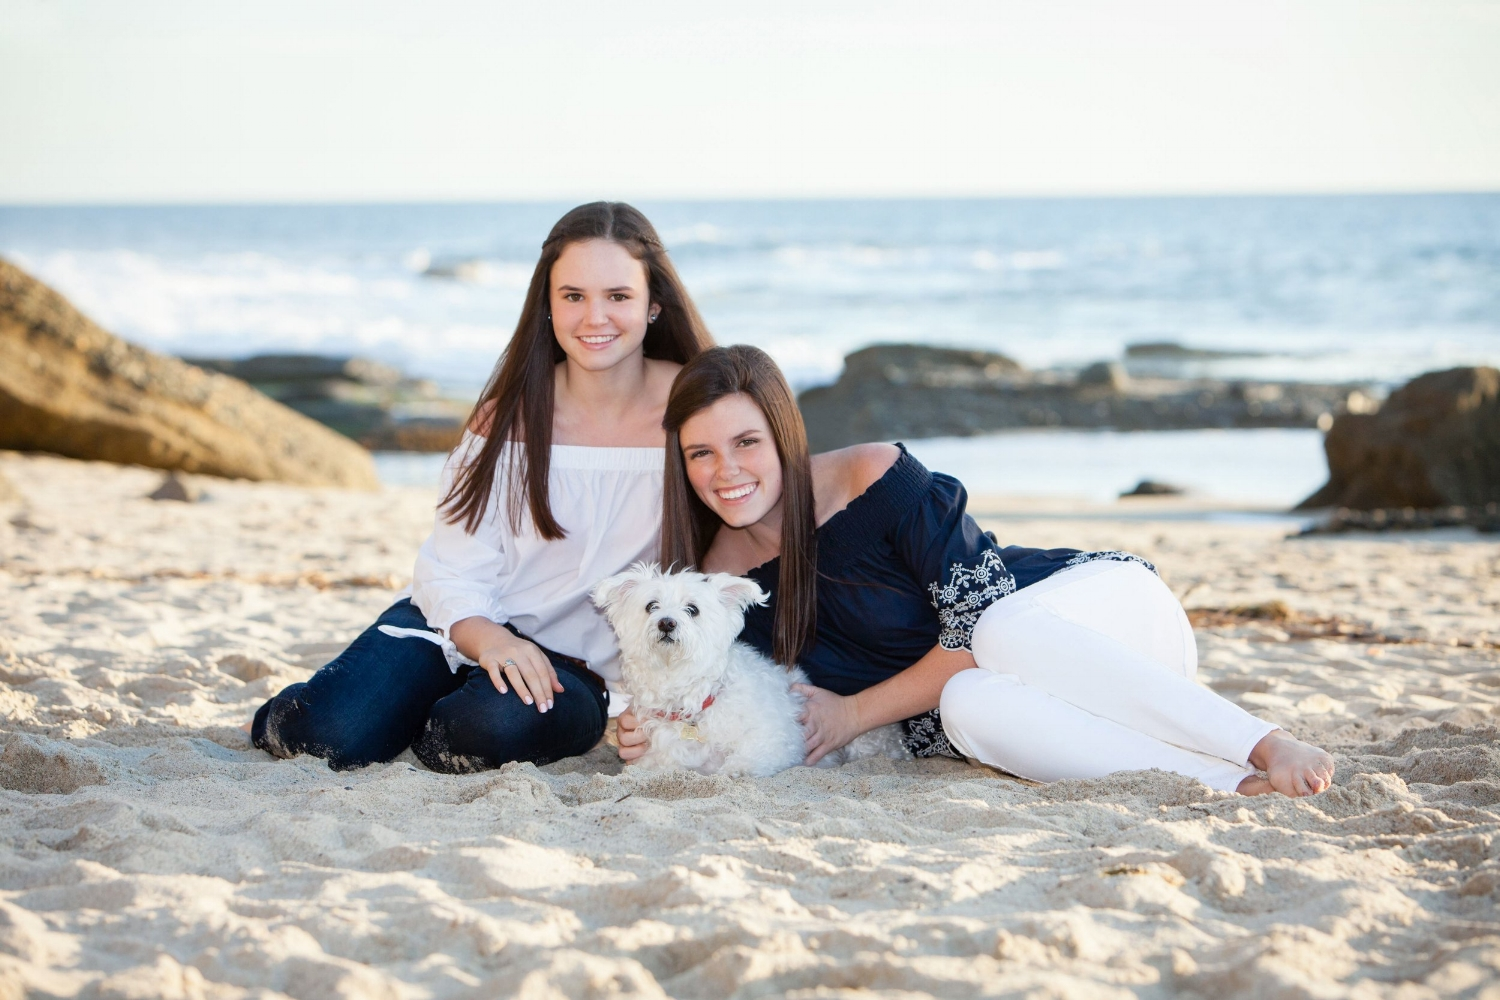 Sisters cuddling with their dog at the beach.